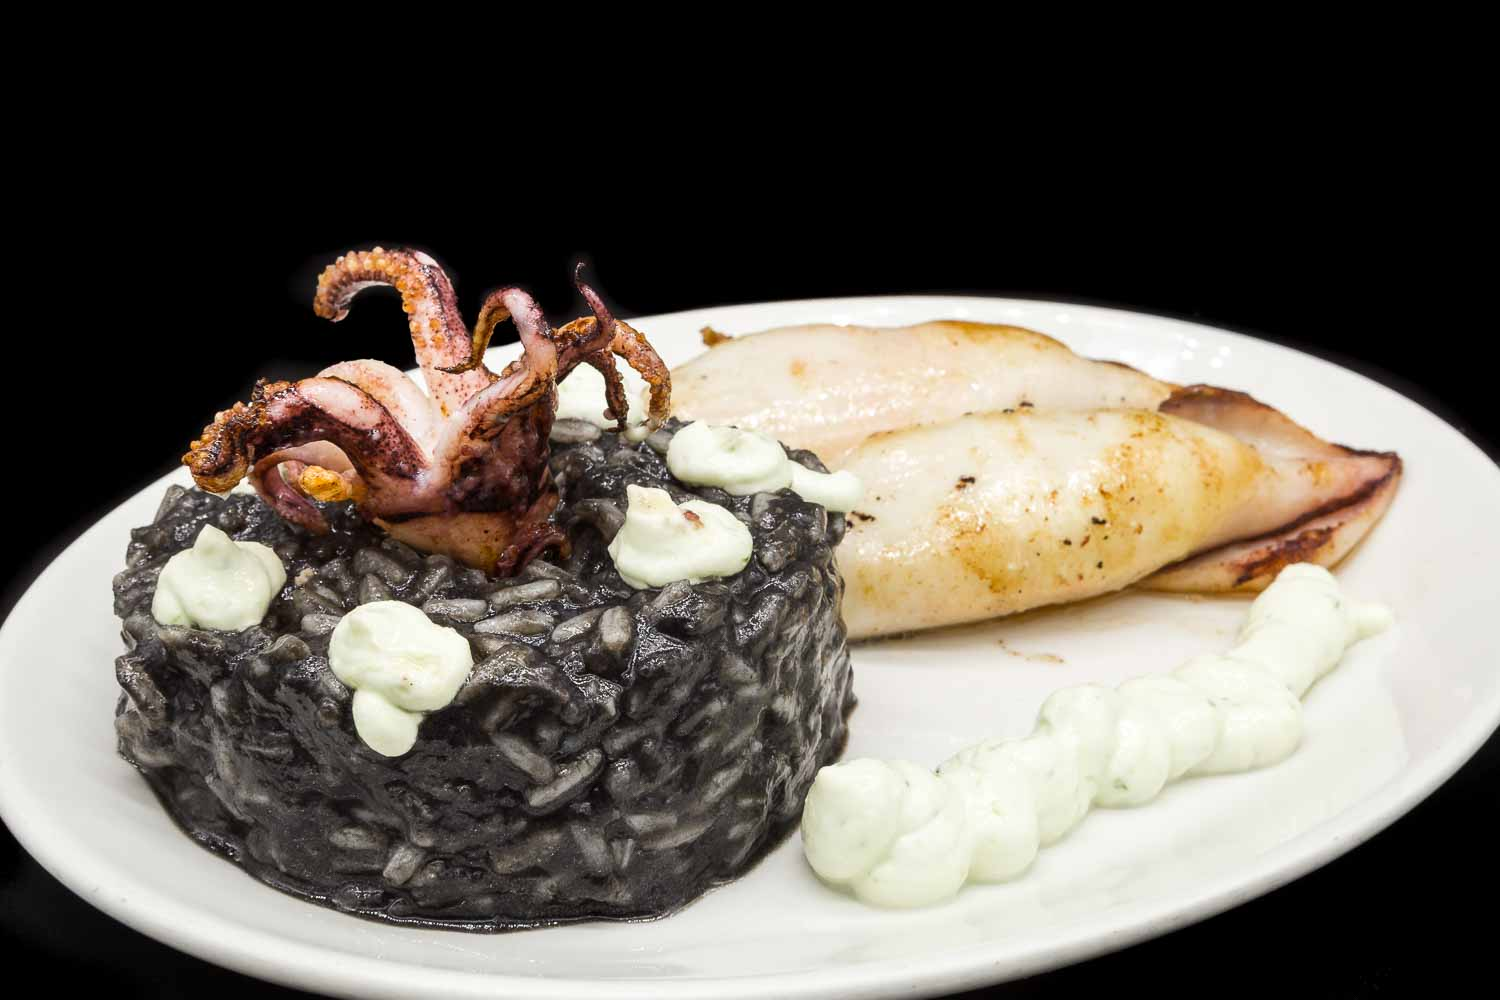 Rice, squid and mayonnaise